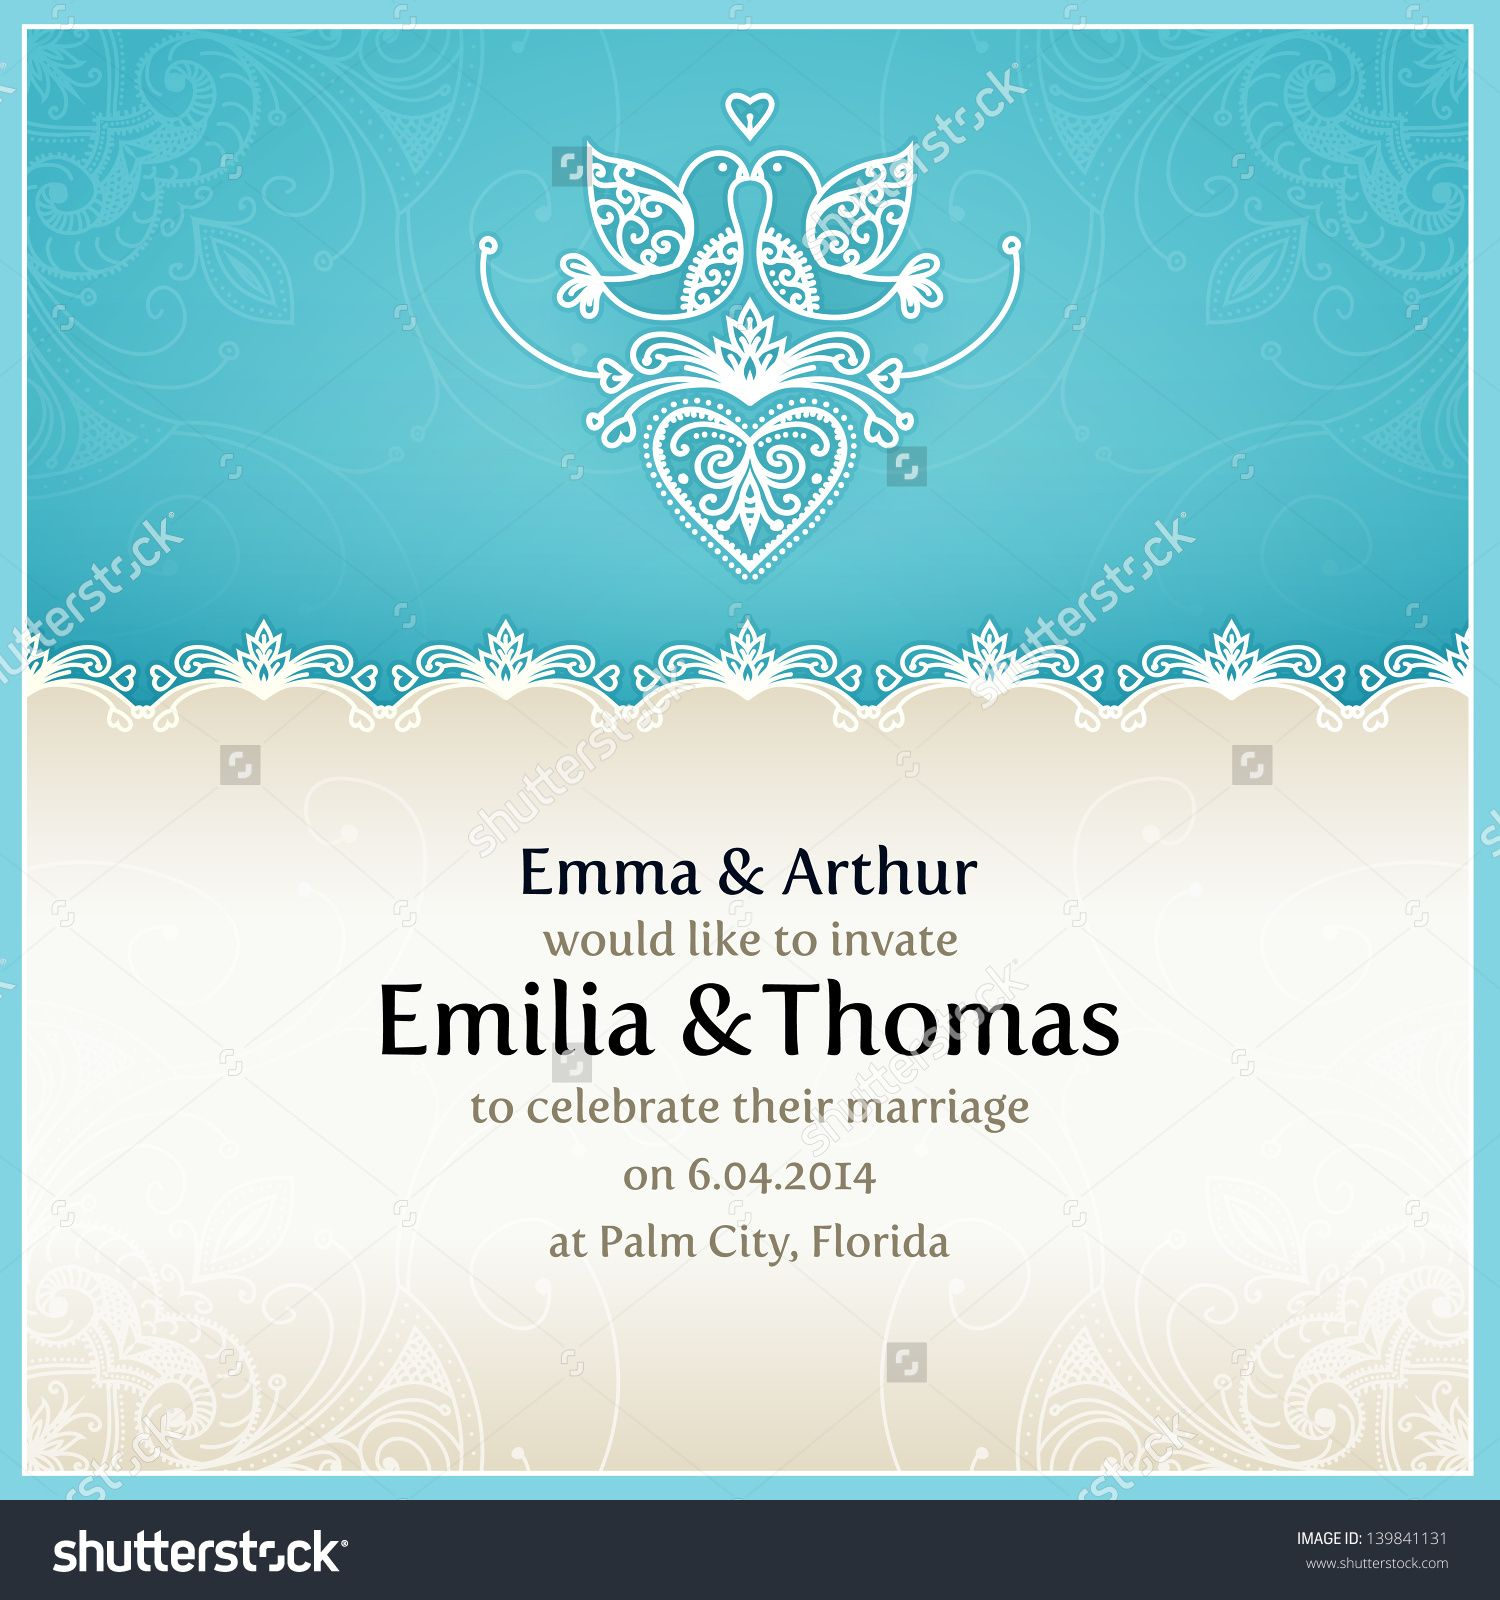 Perfect Wedding Invitation Design Template Embellishment